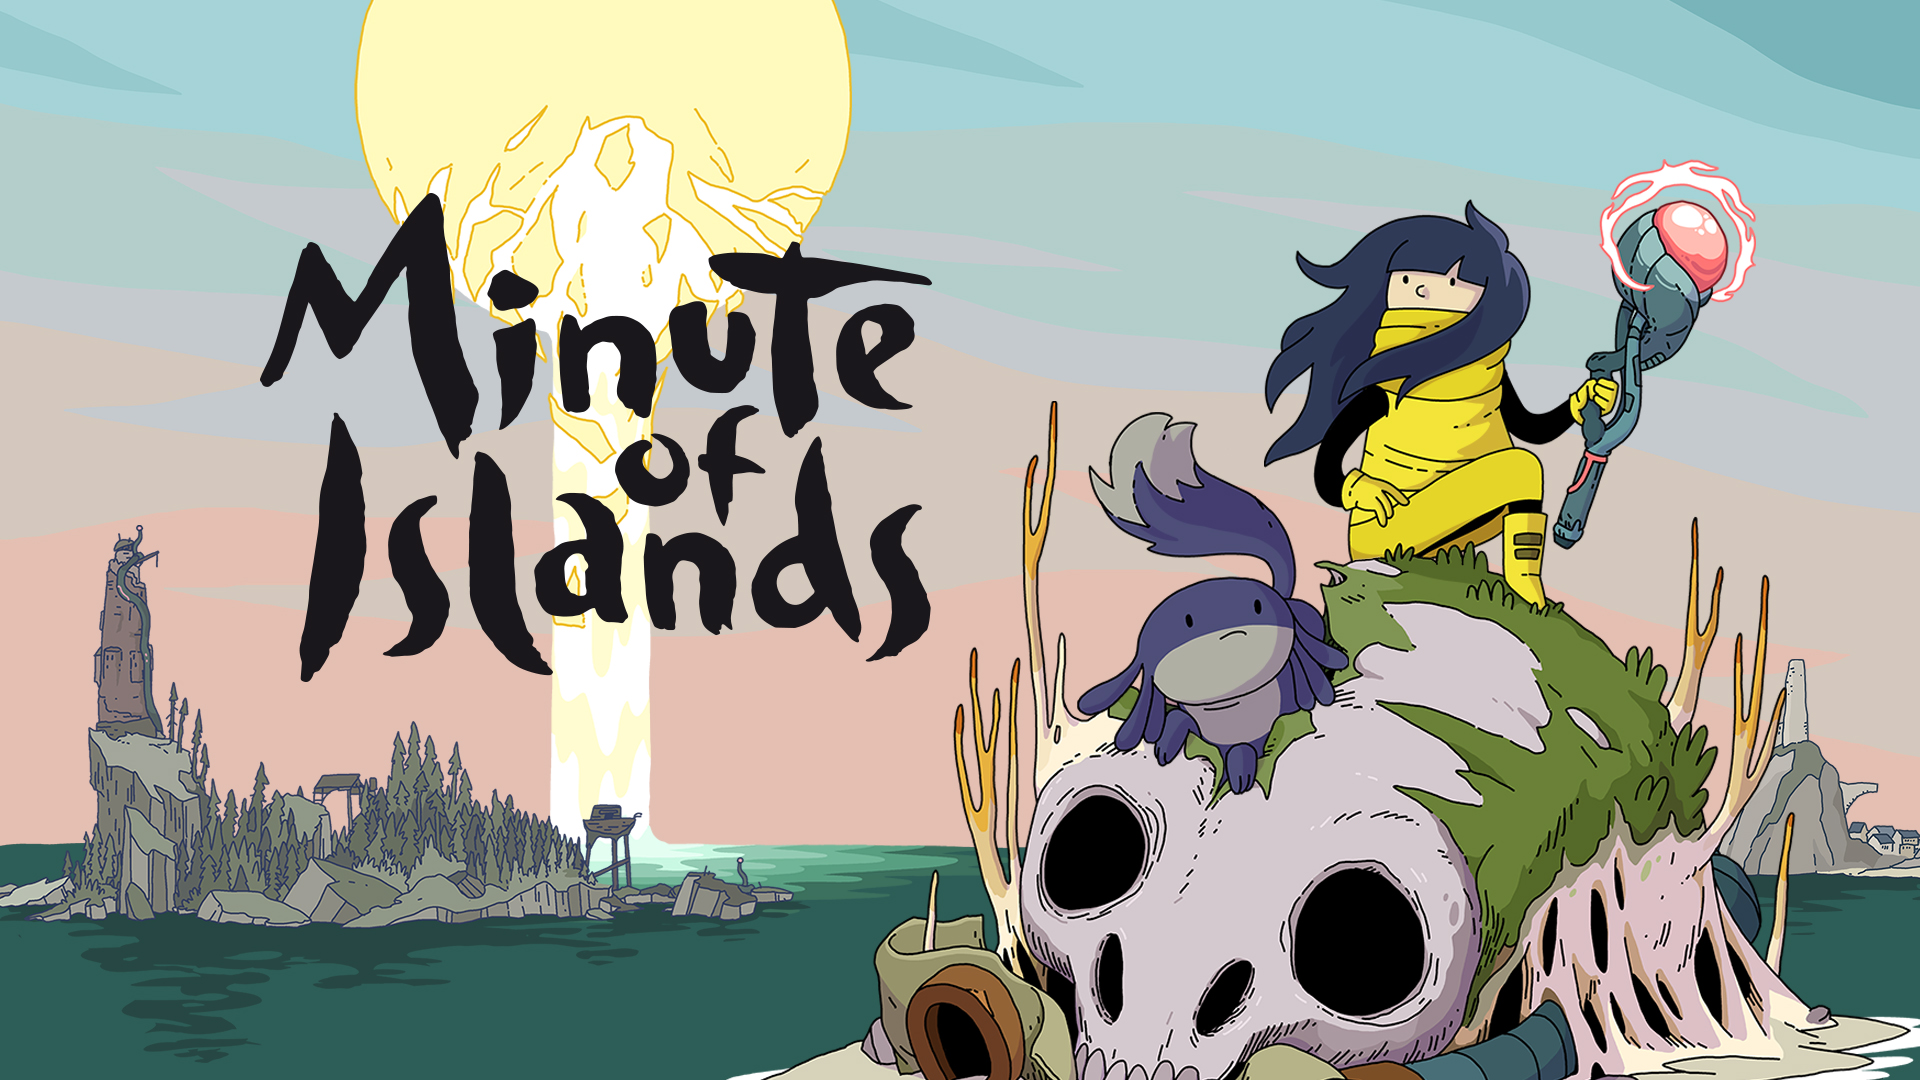 Most Anticipated Games - Minute of Islands